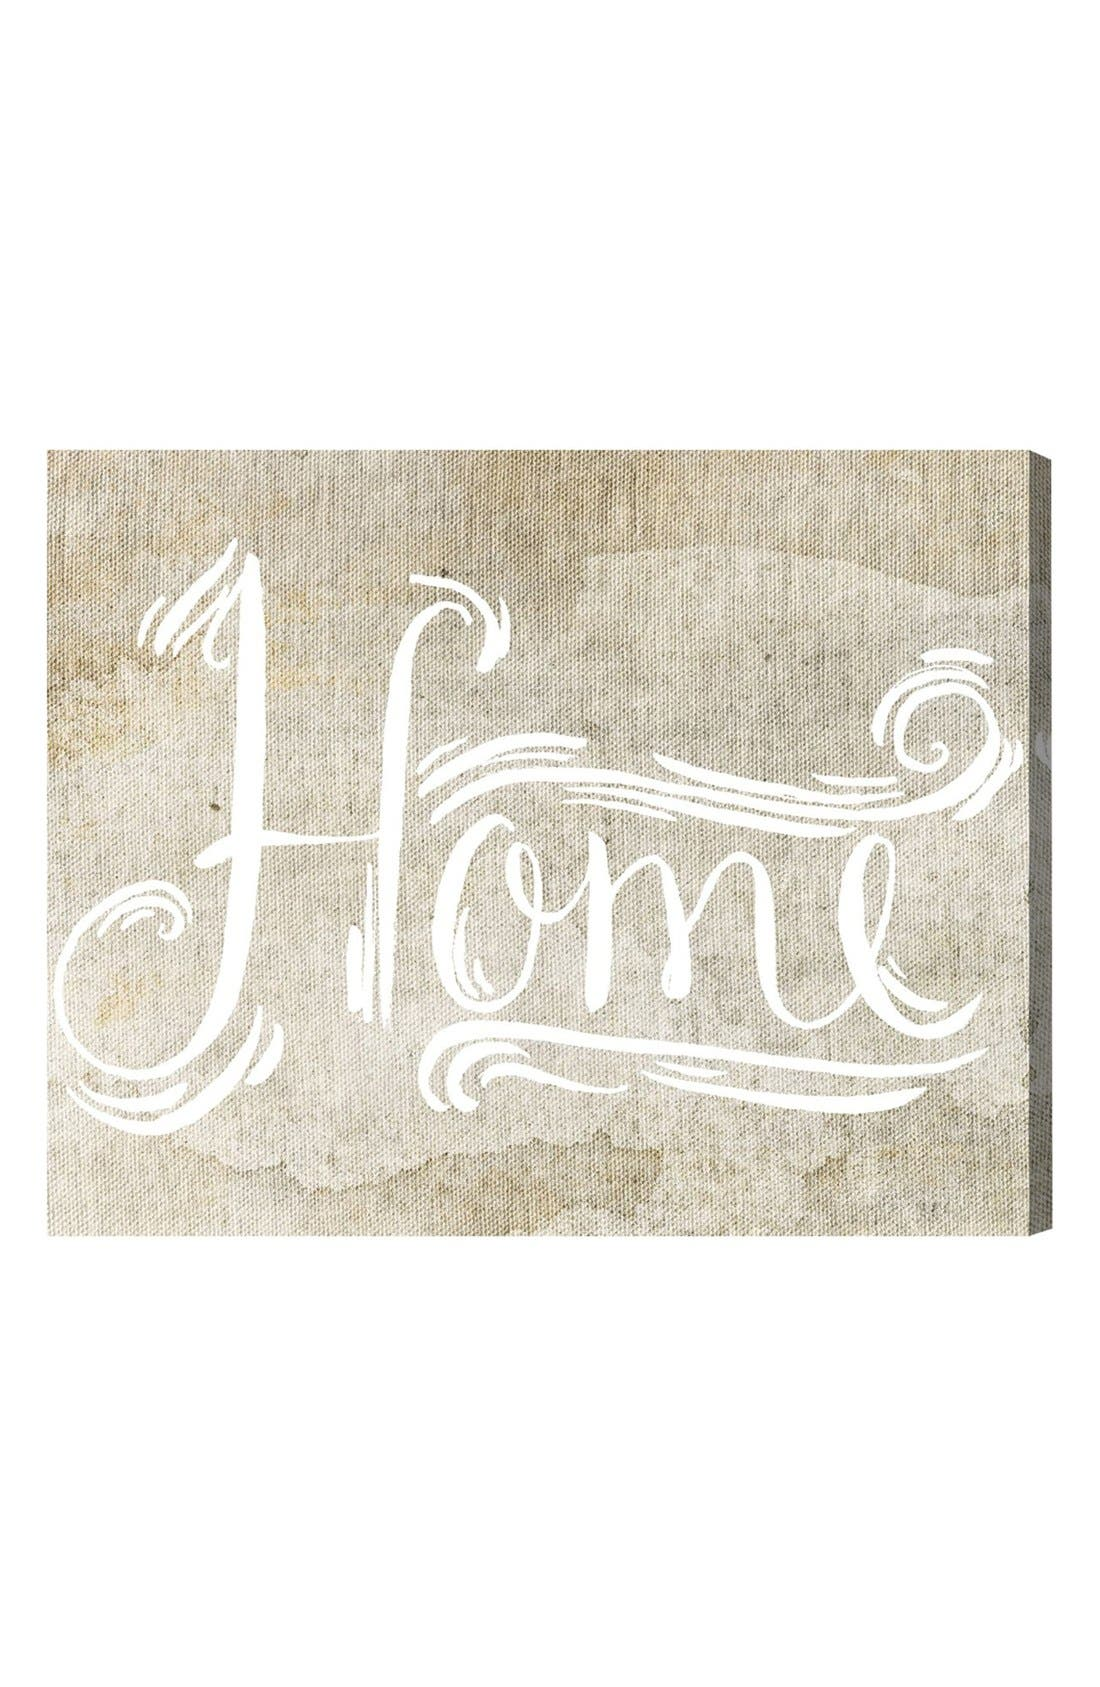 'Home Sweet Home' Hand Stretched Canvas Wall Art,                             Main thumbnail 1, color,                             250